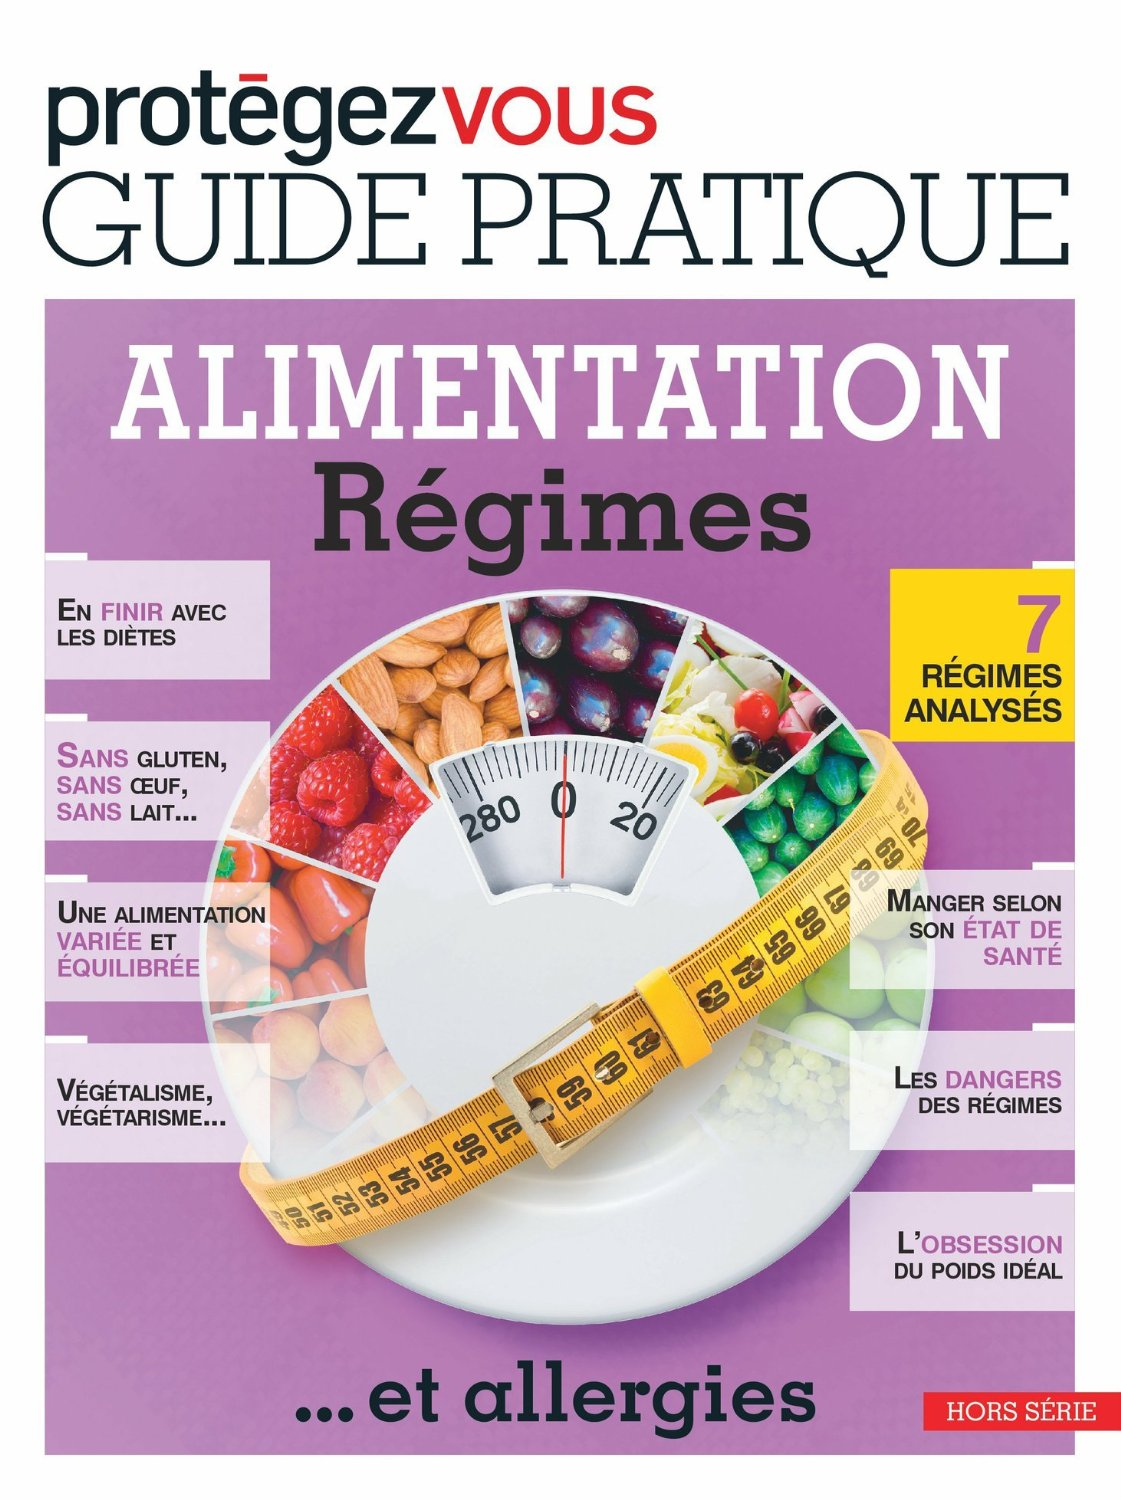 Guide pratique : Alimentation Régimes et allergies